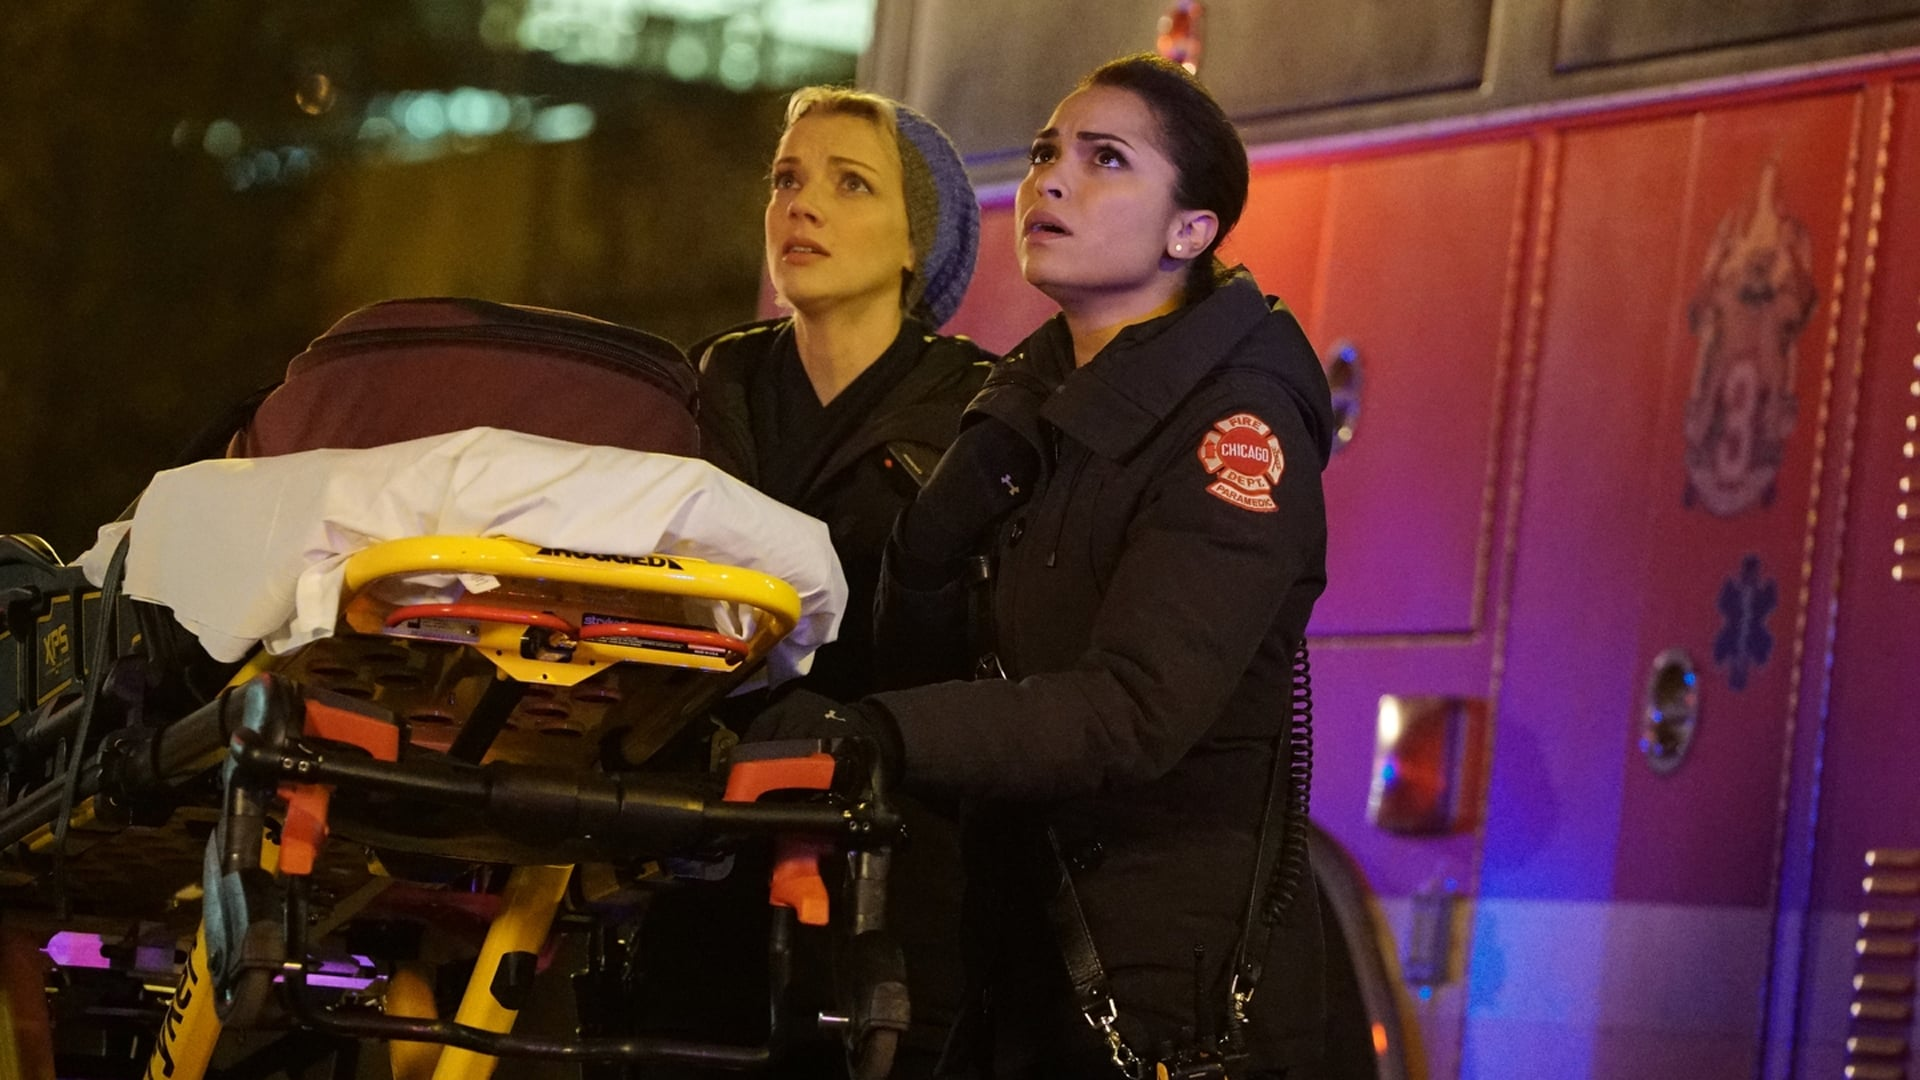 Chicago Fire - Season 5 Episode 12 : An Agent of the Machine